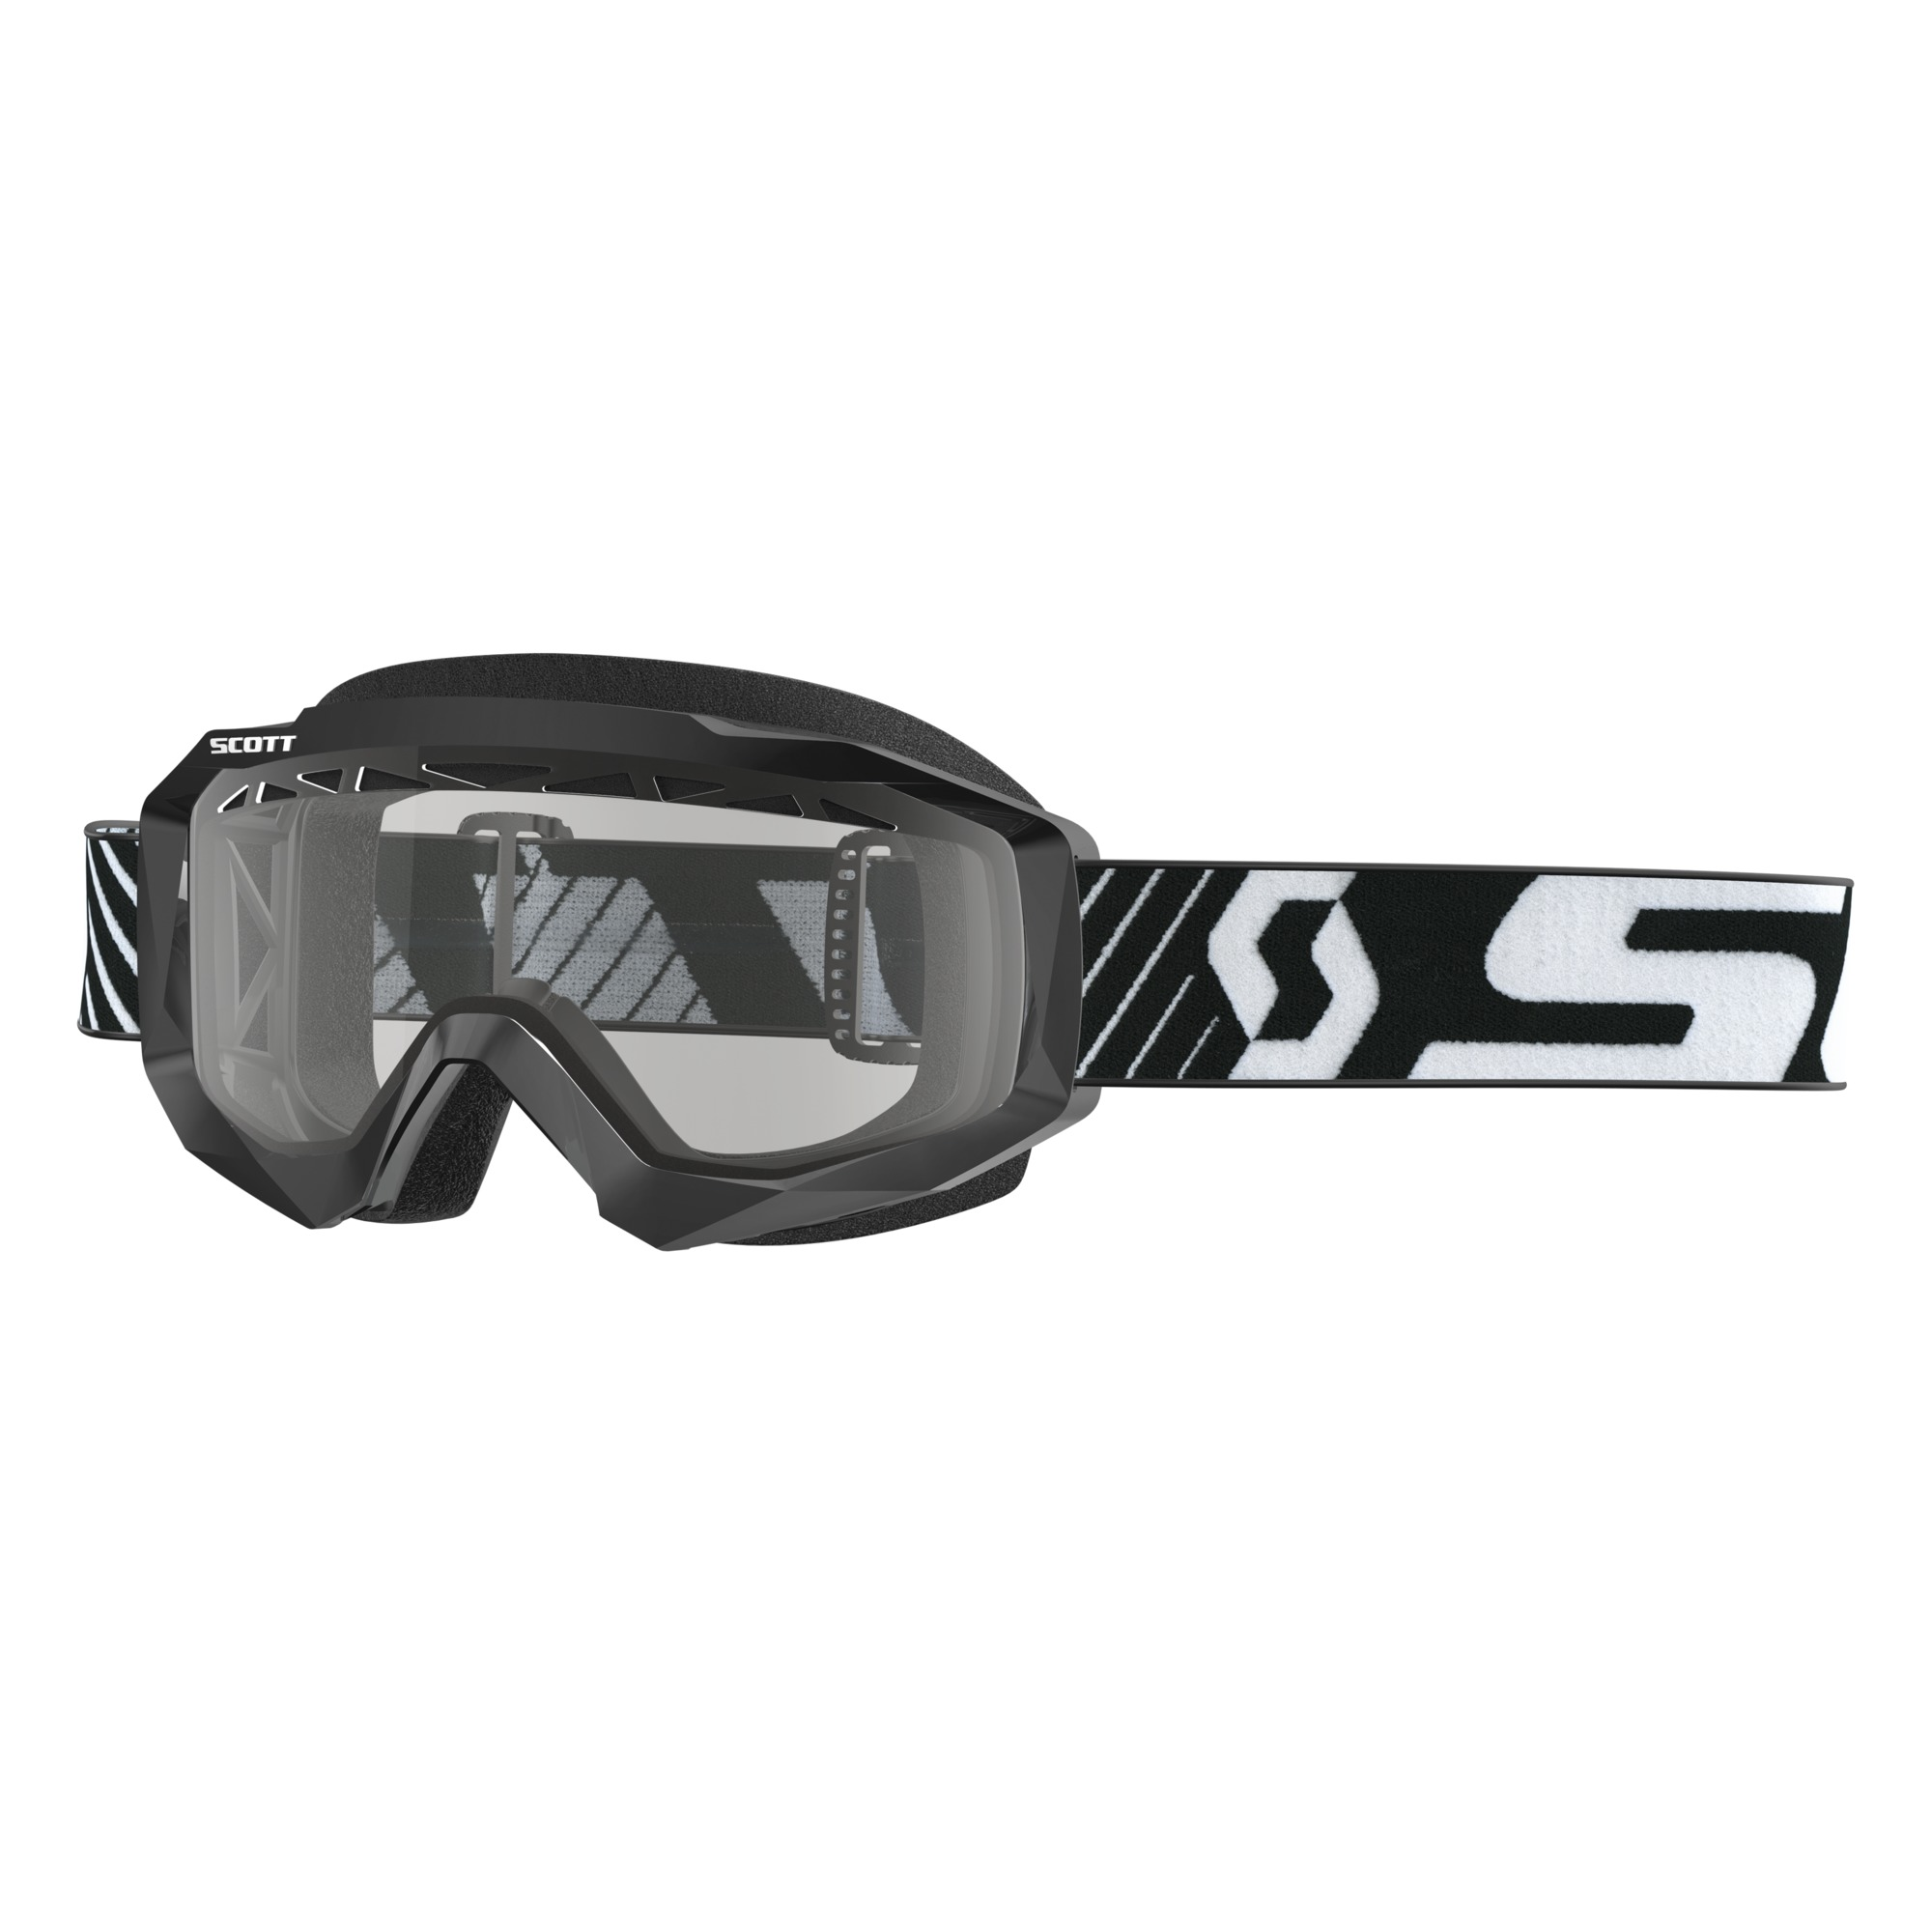 Maschera SCOTT Hustle MX Enduro